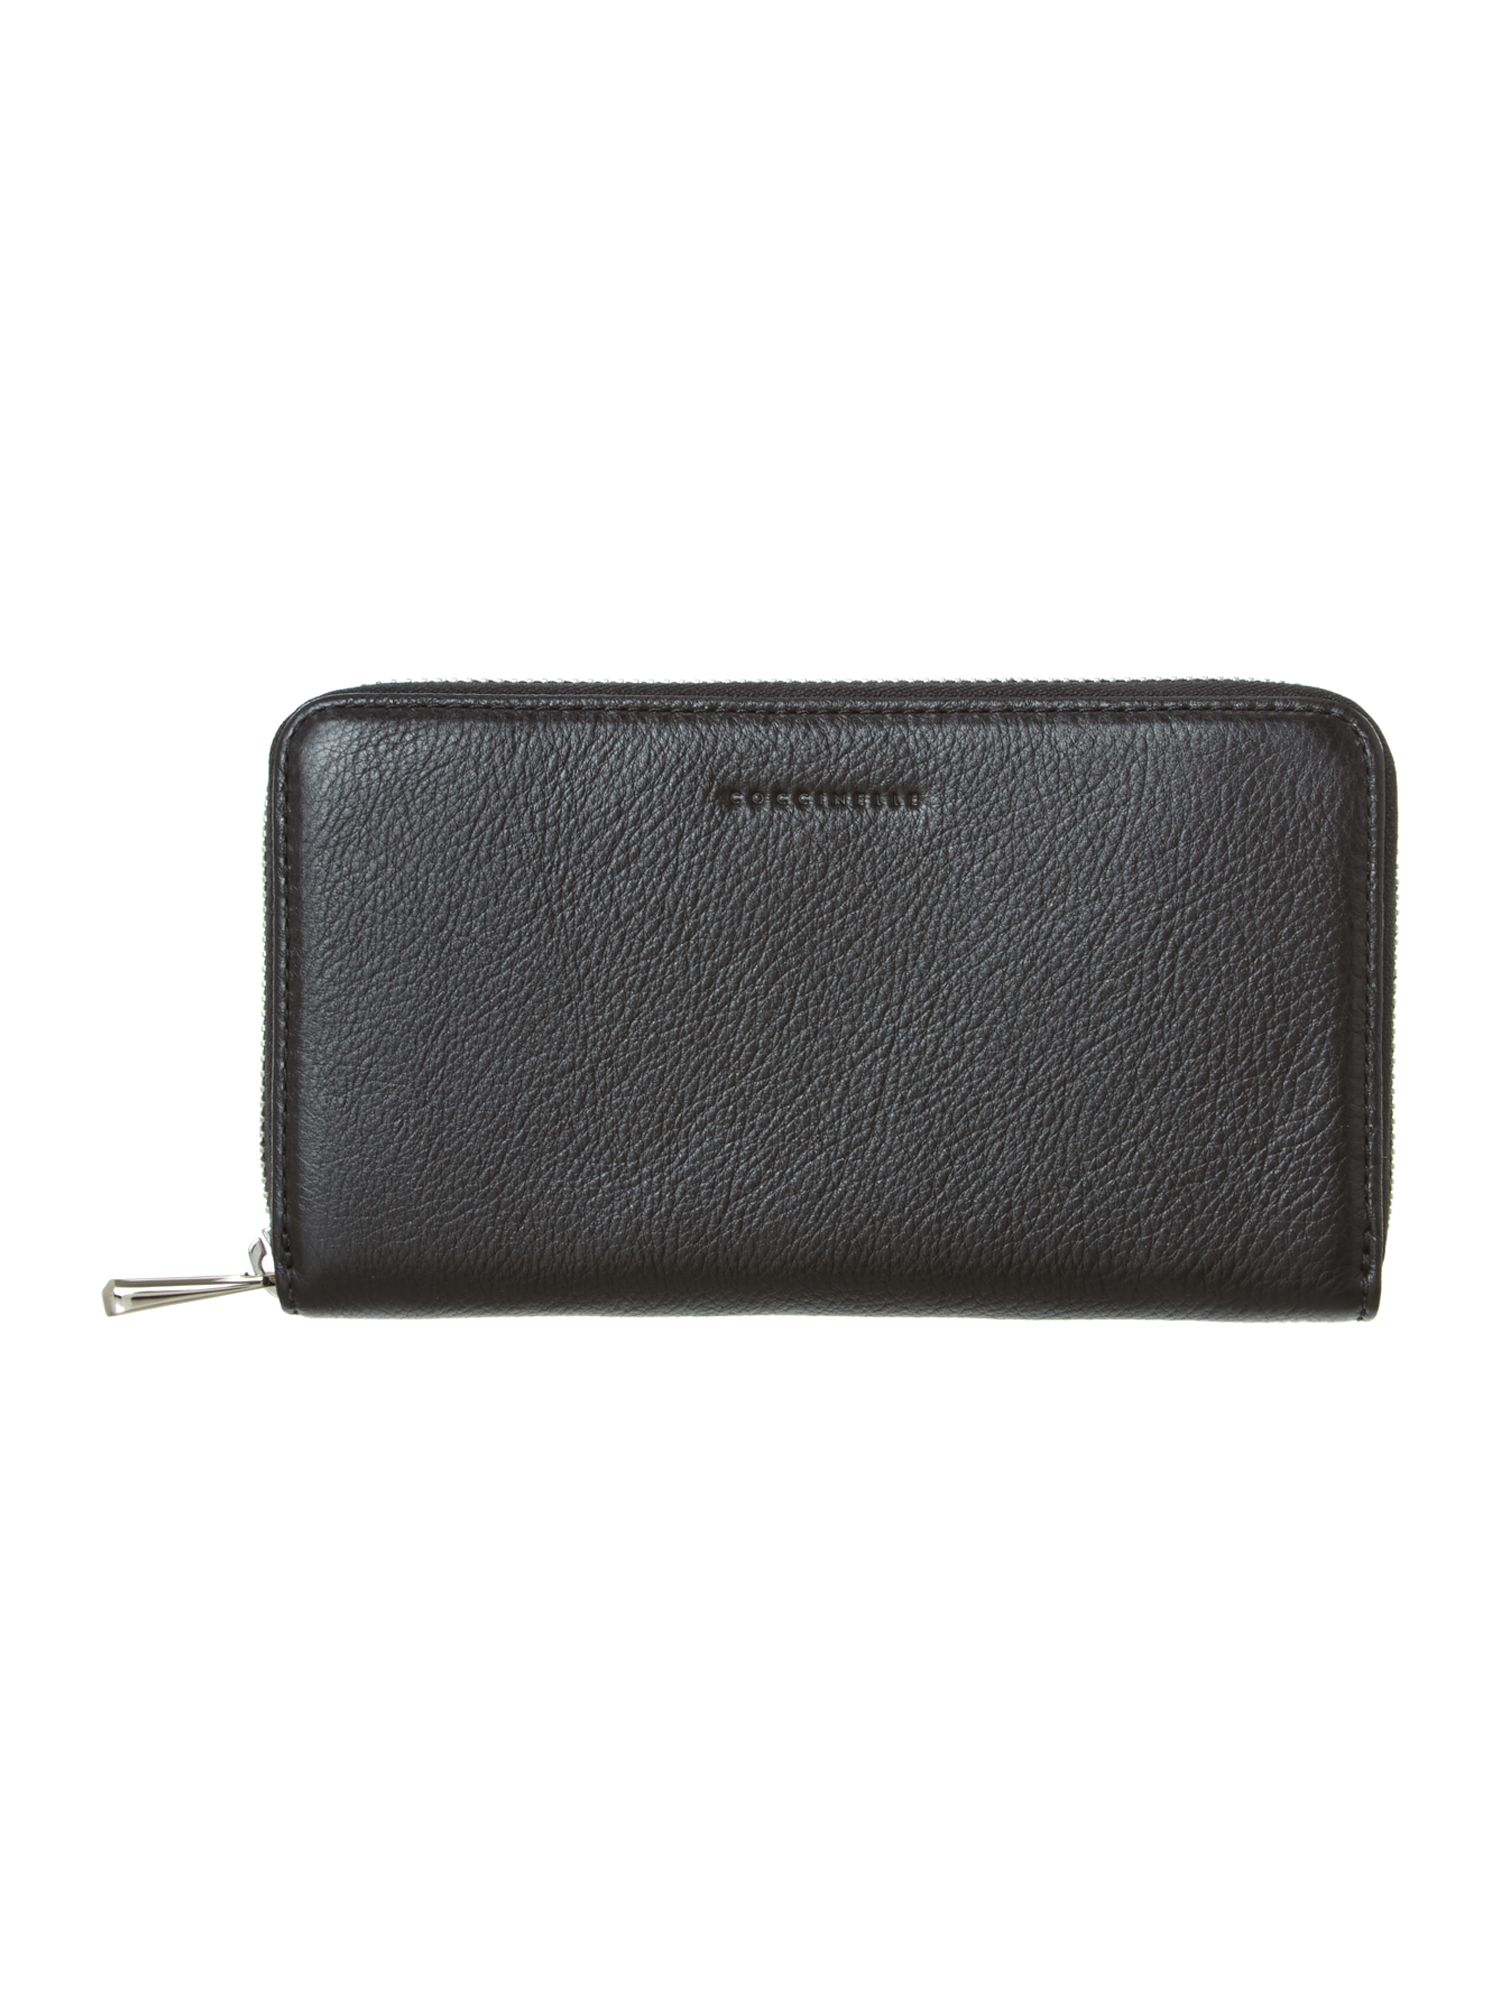 Black large zip around purse